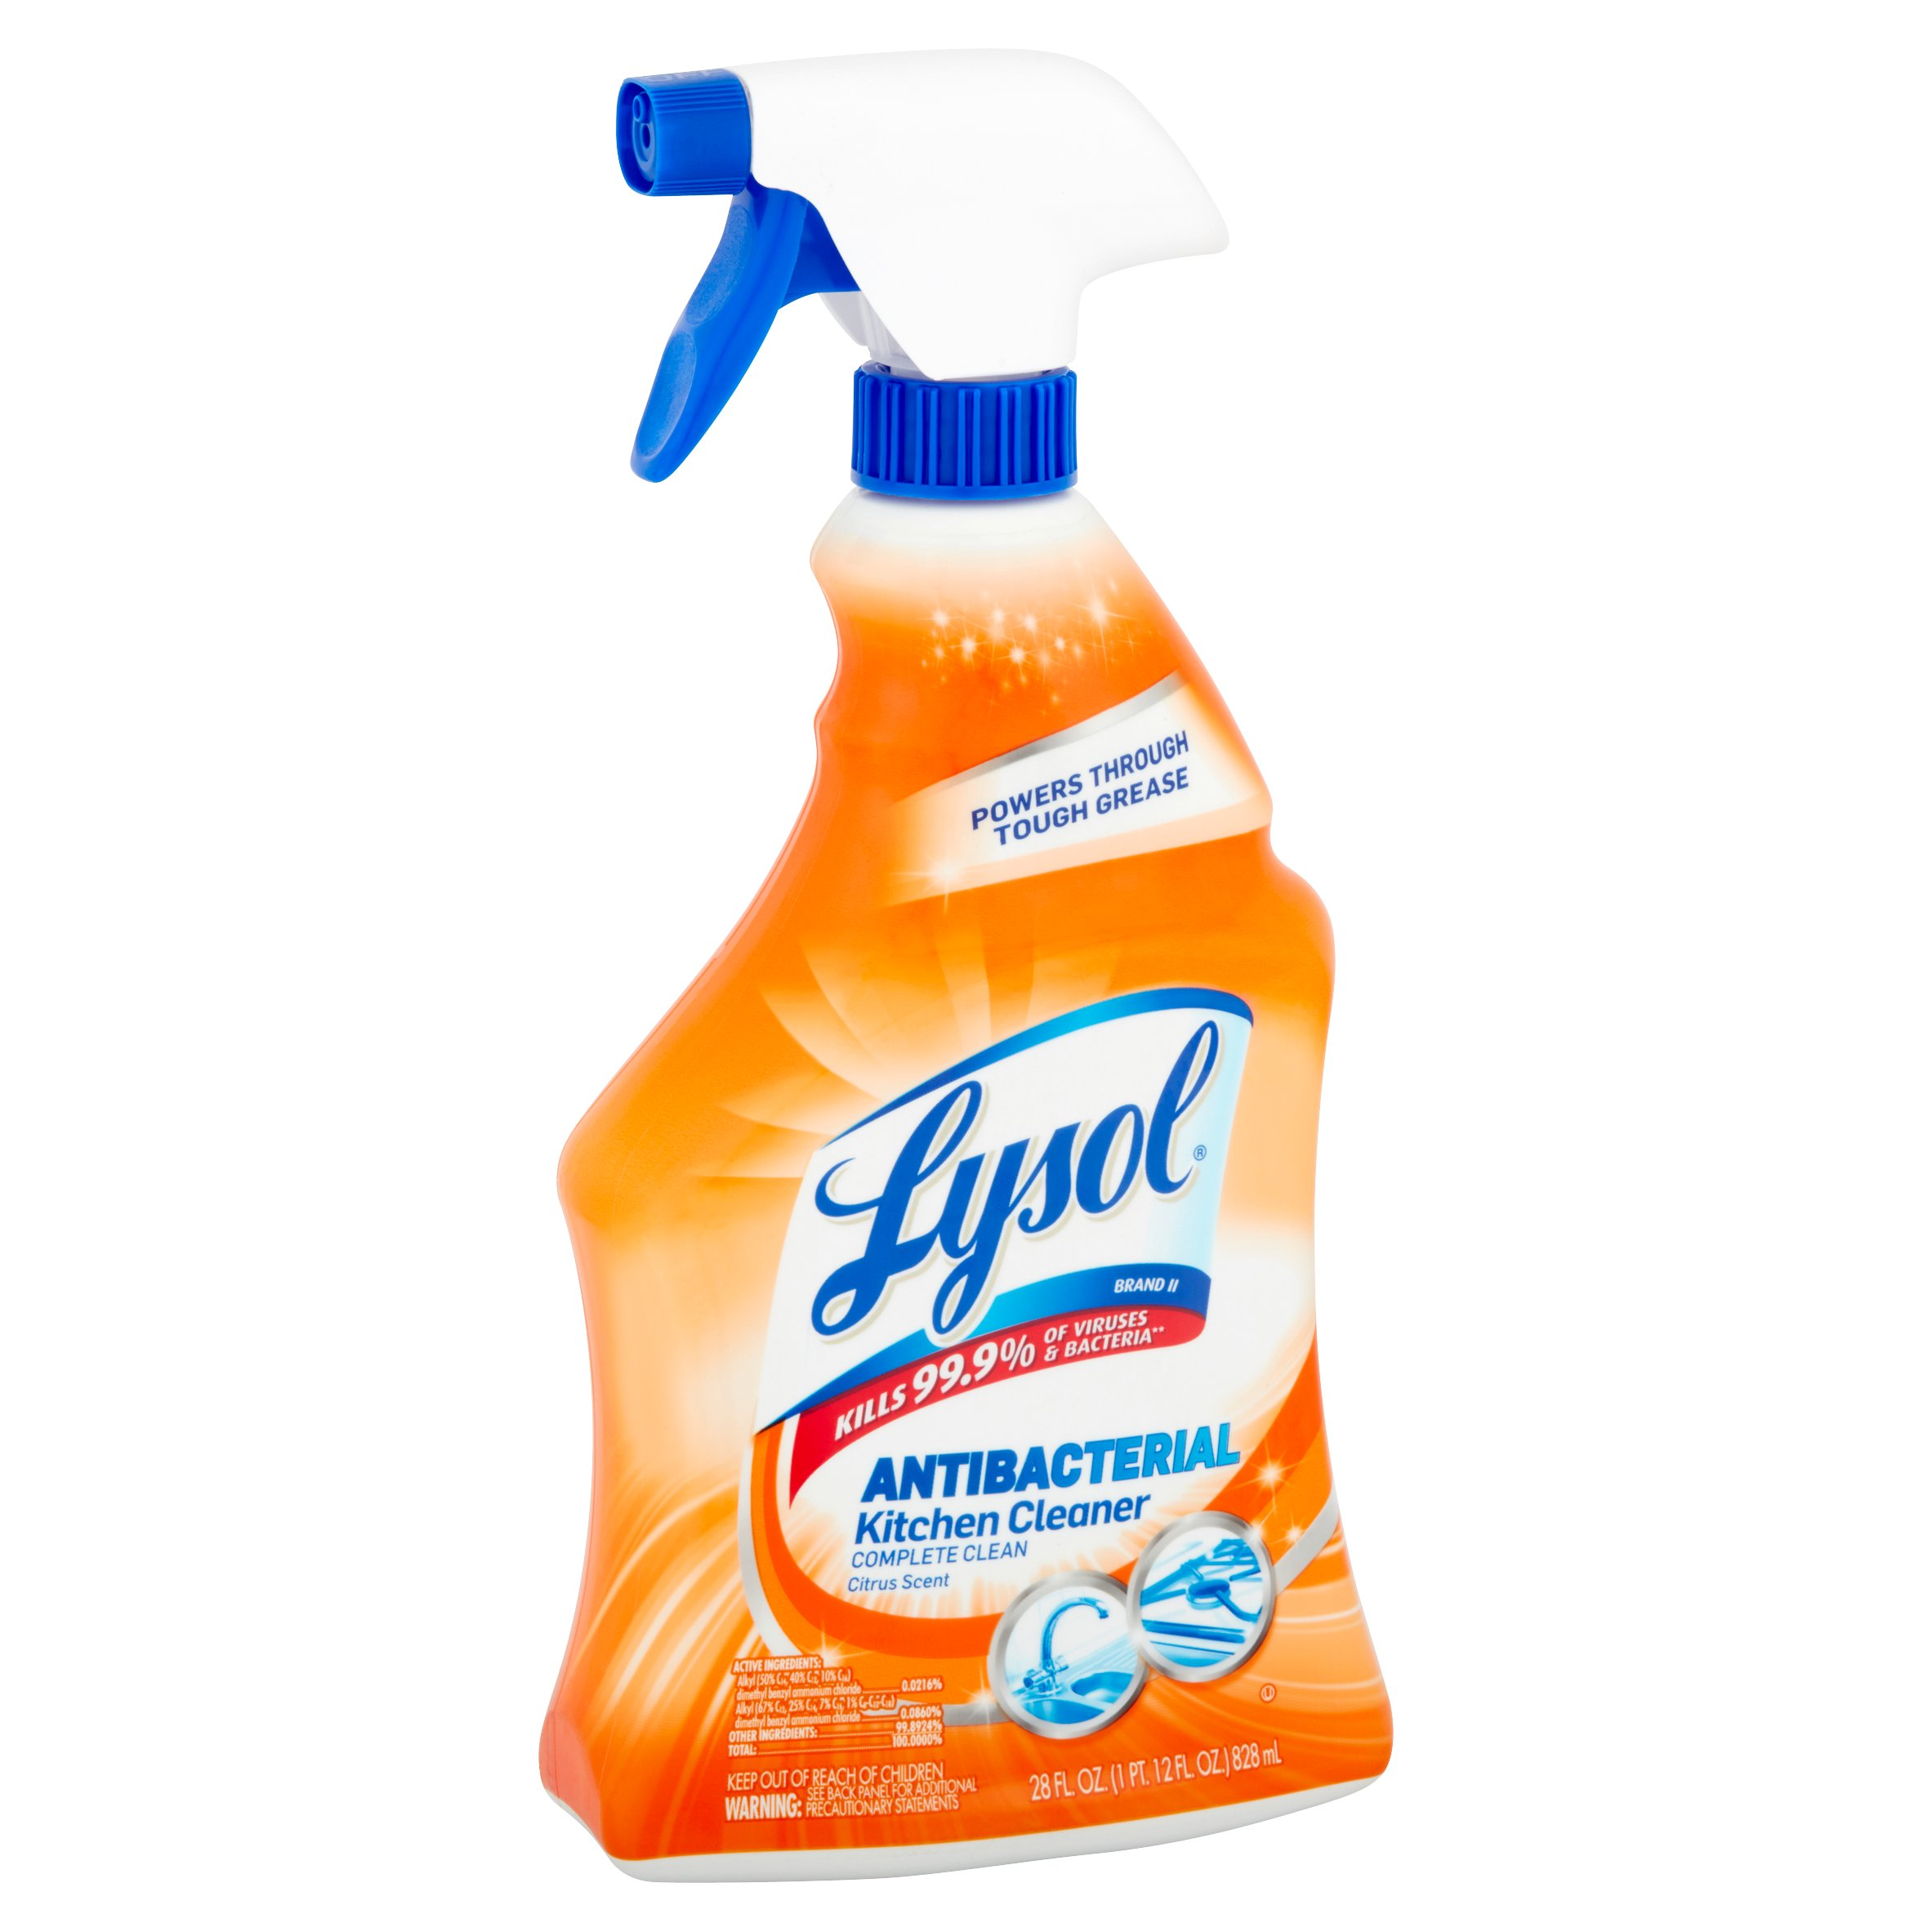 lysol antibacterial kitchen cleaner safety data sheet kitchen